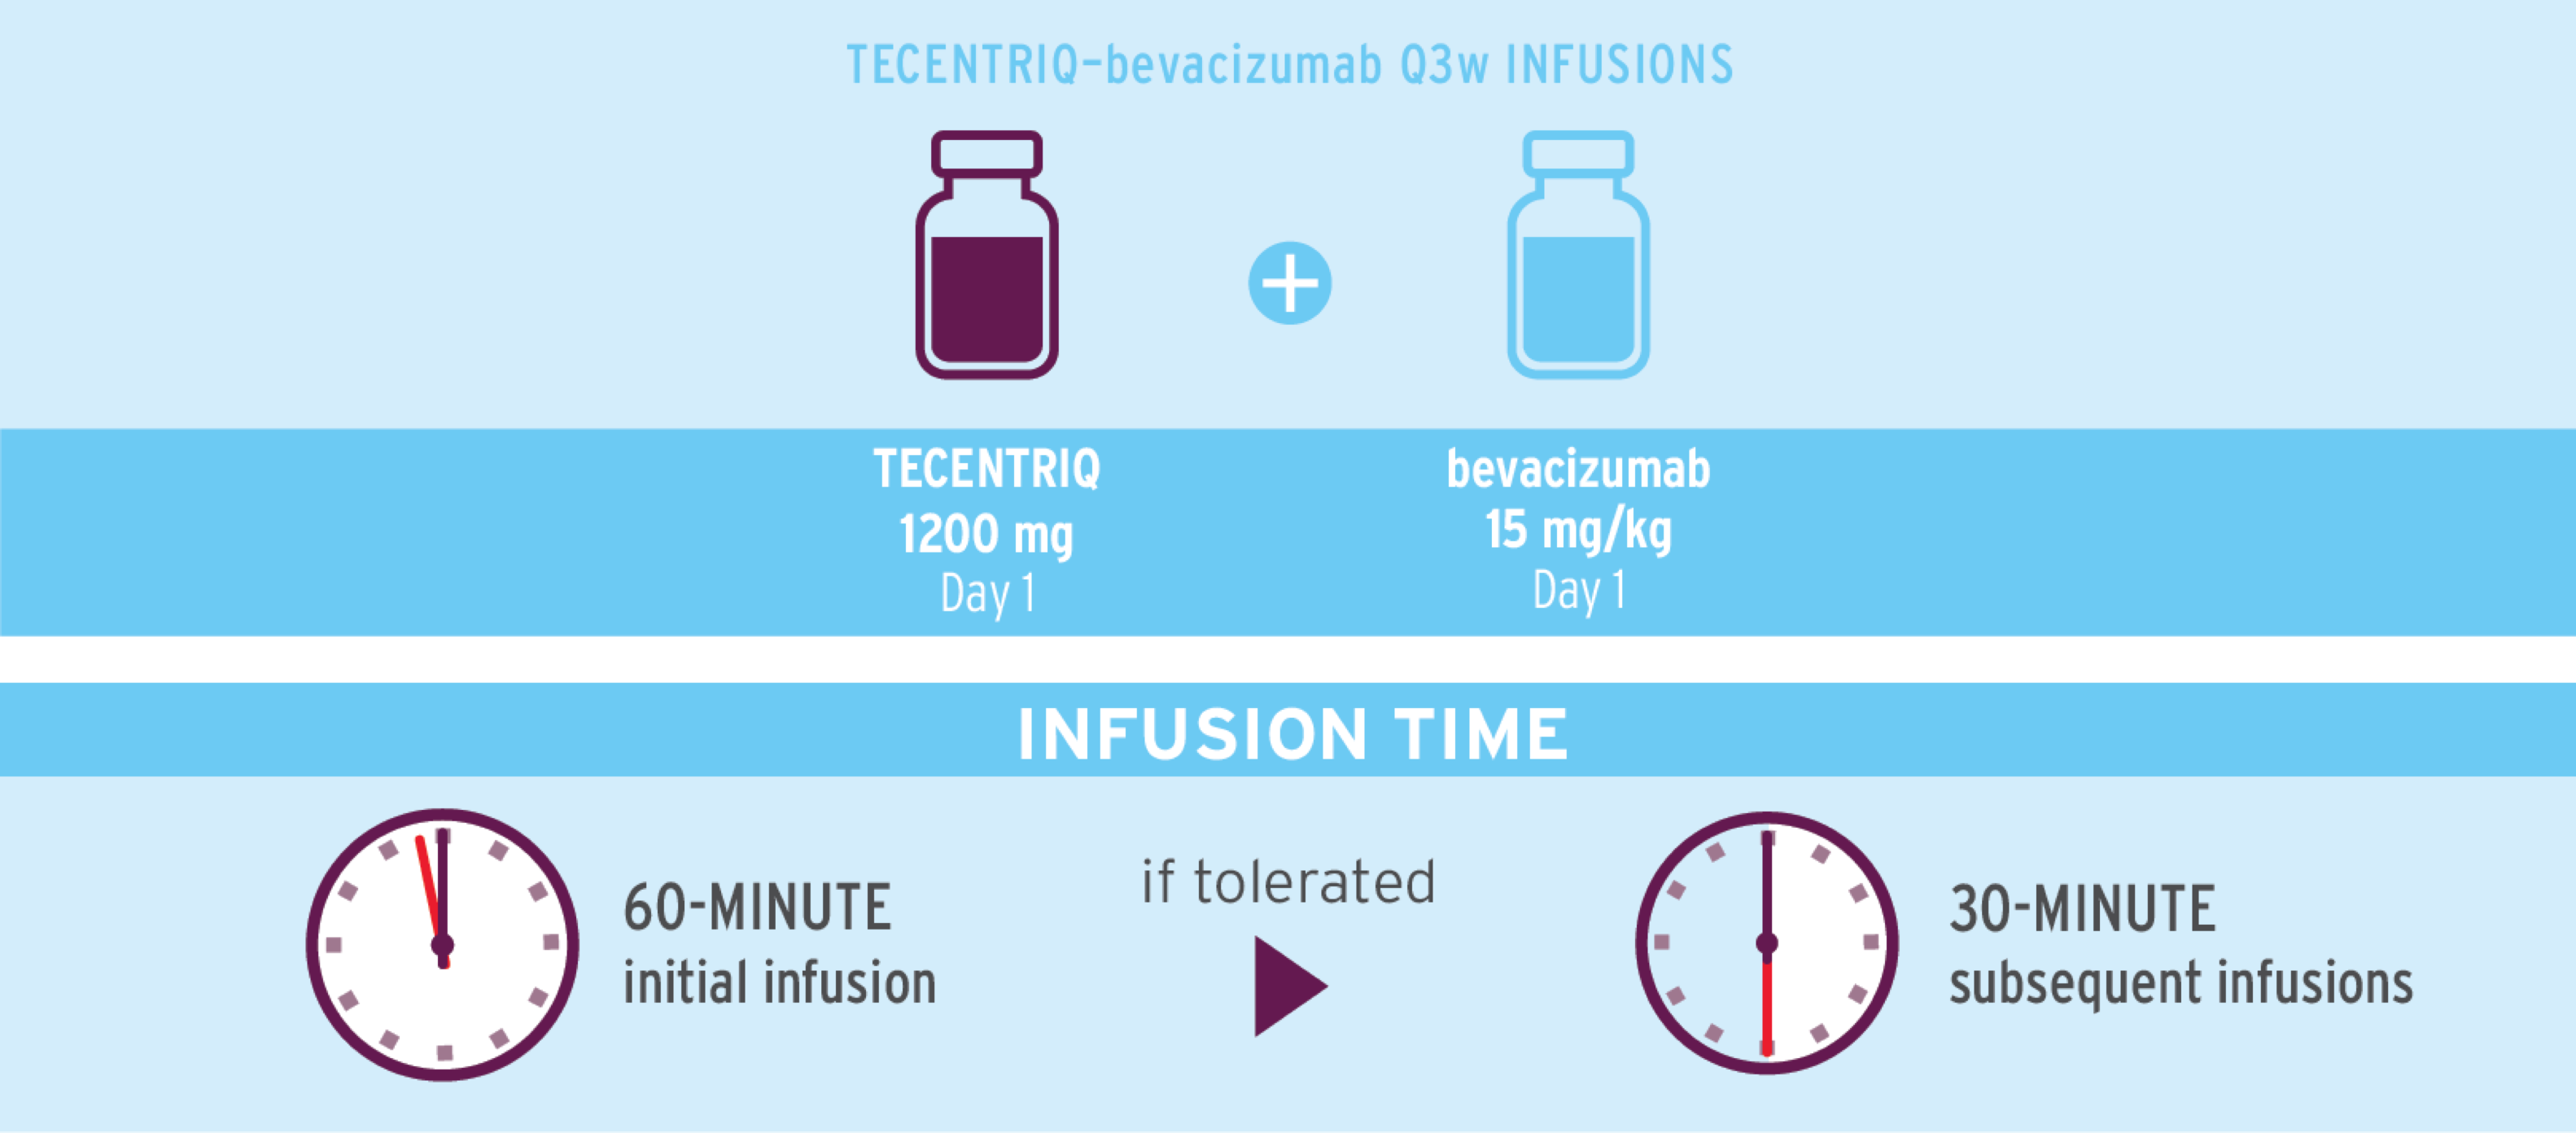 Infographic to show how to administer TECENTRIQ in combination with bevacizumab.